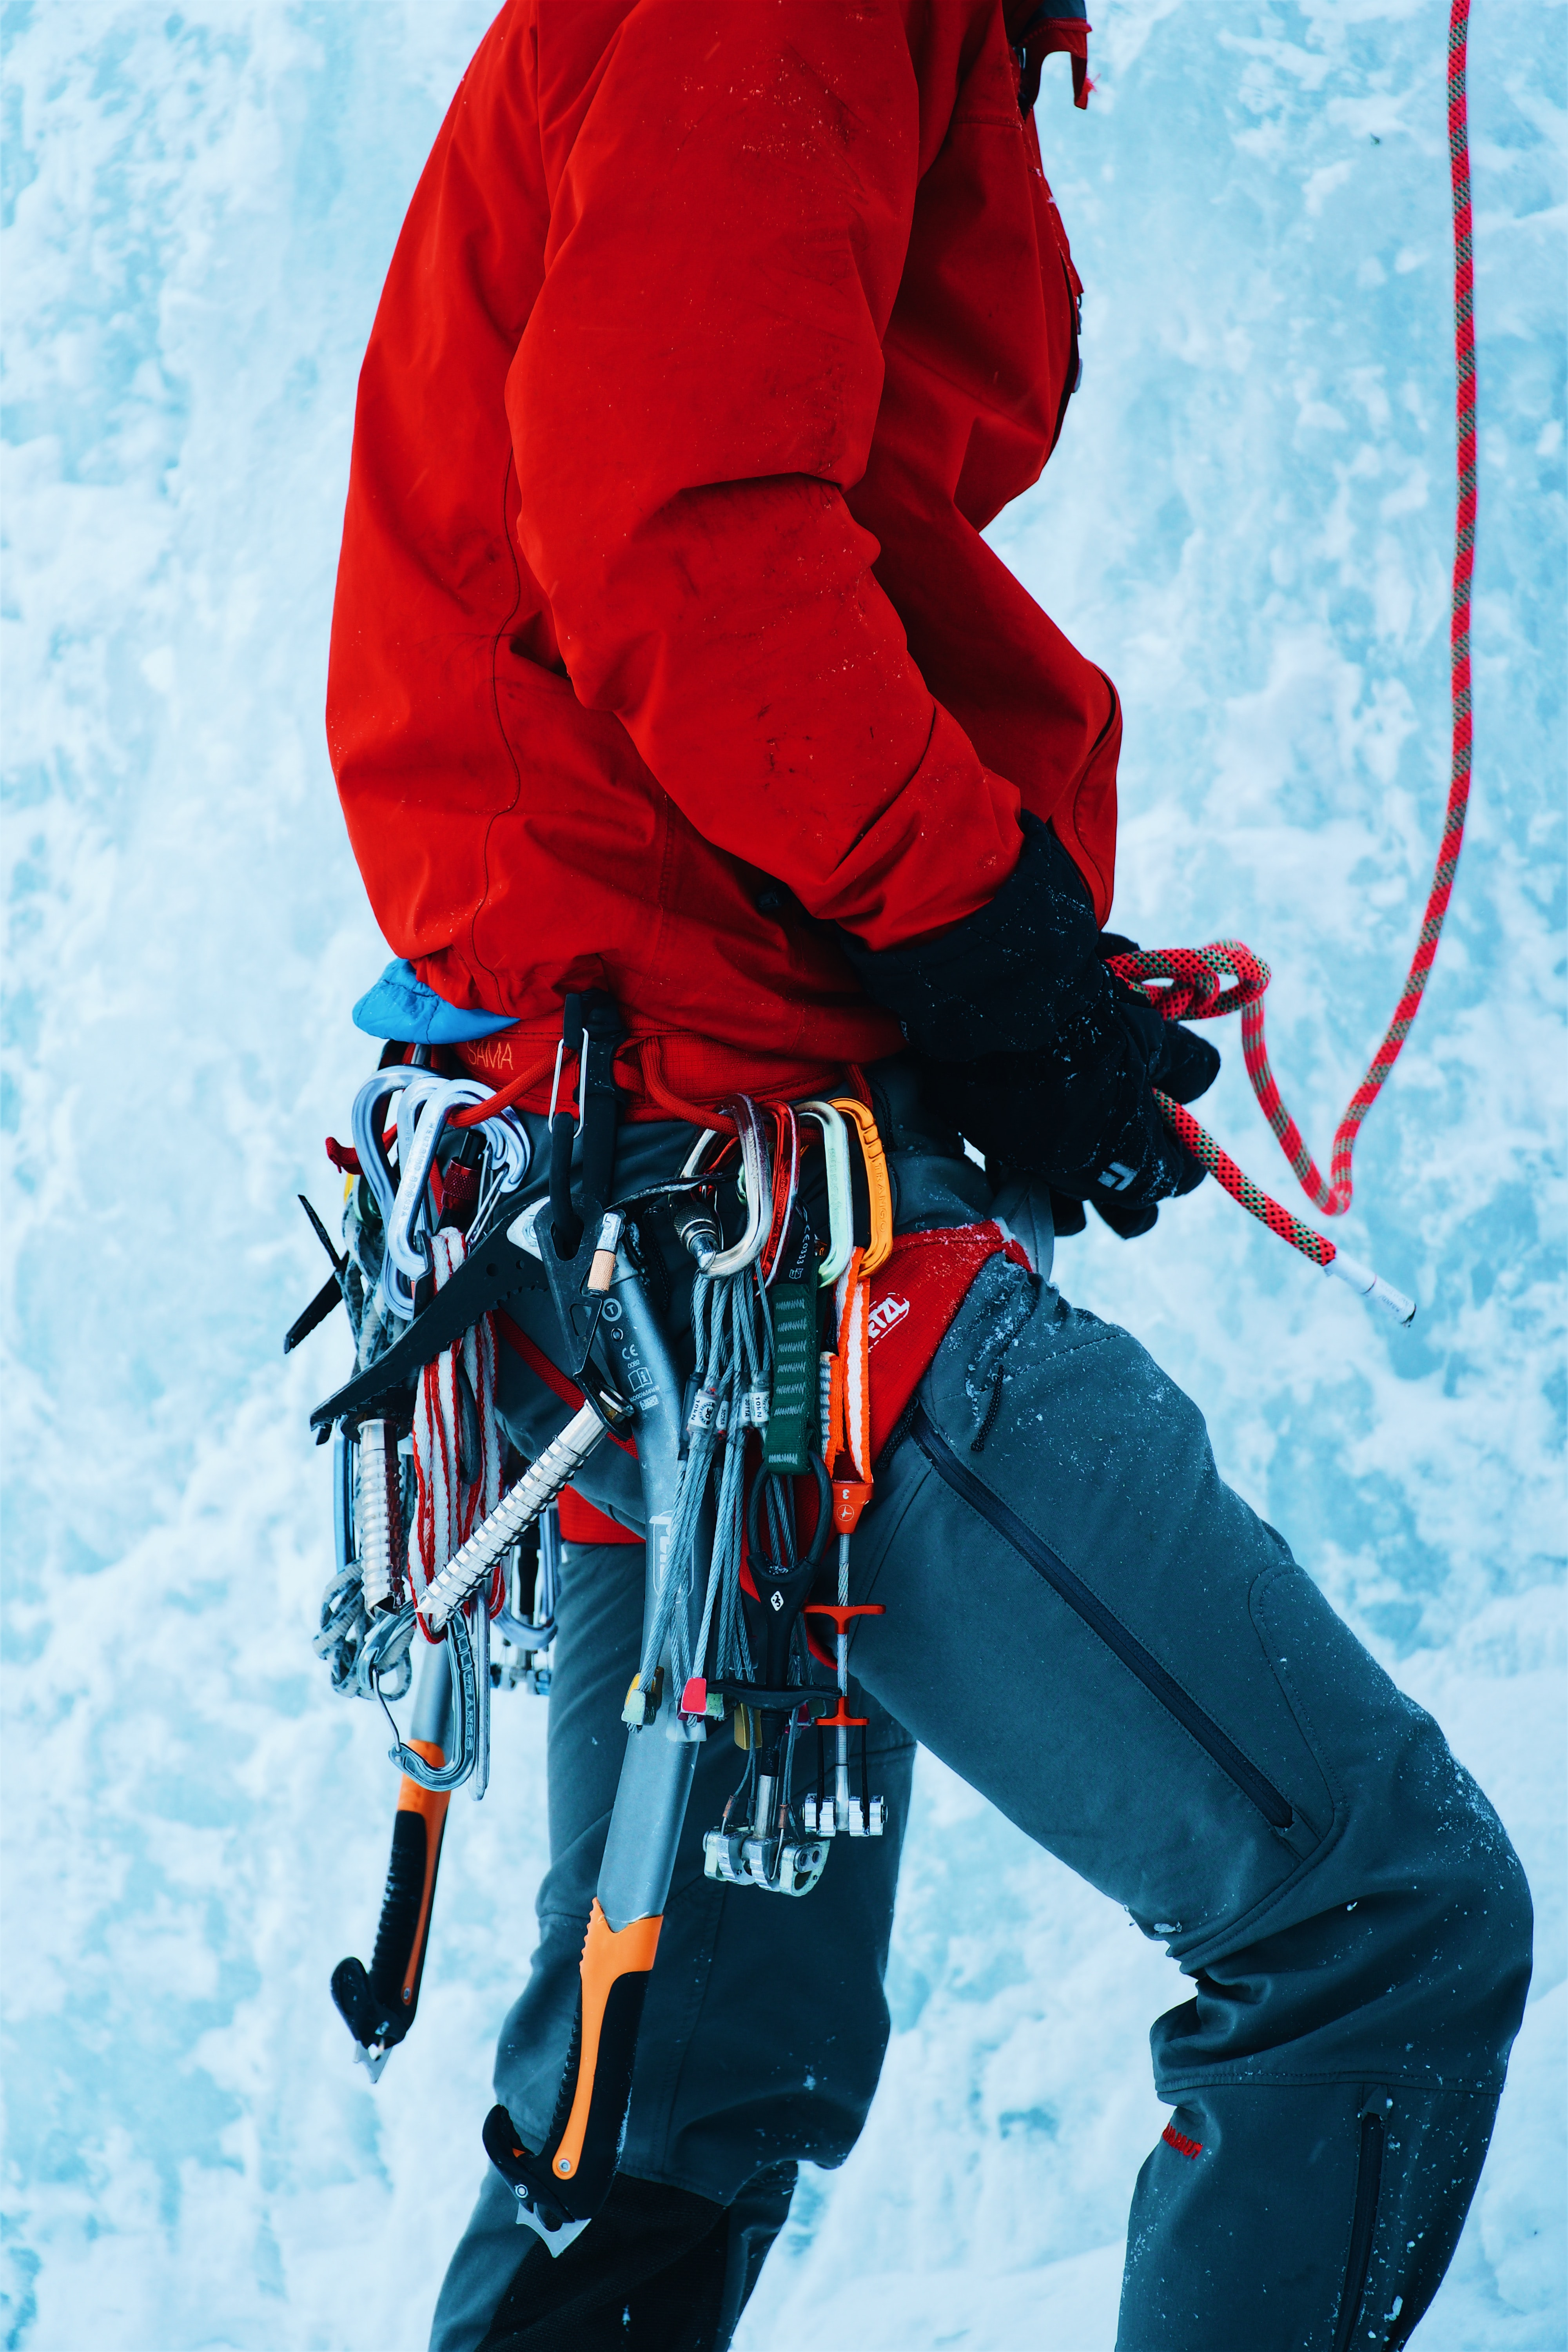 A person with ice climbing gear strapped to a harness on an ice wall